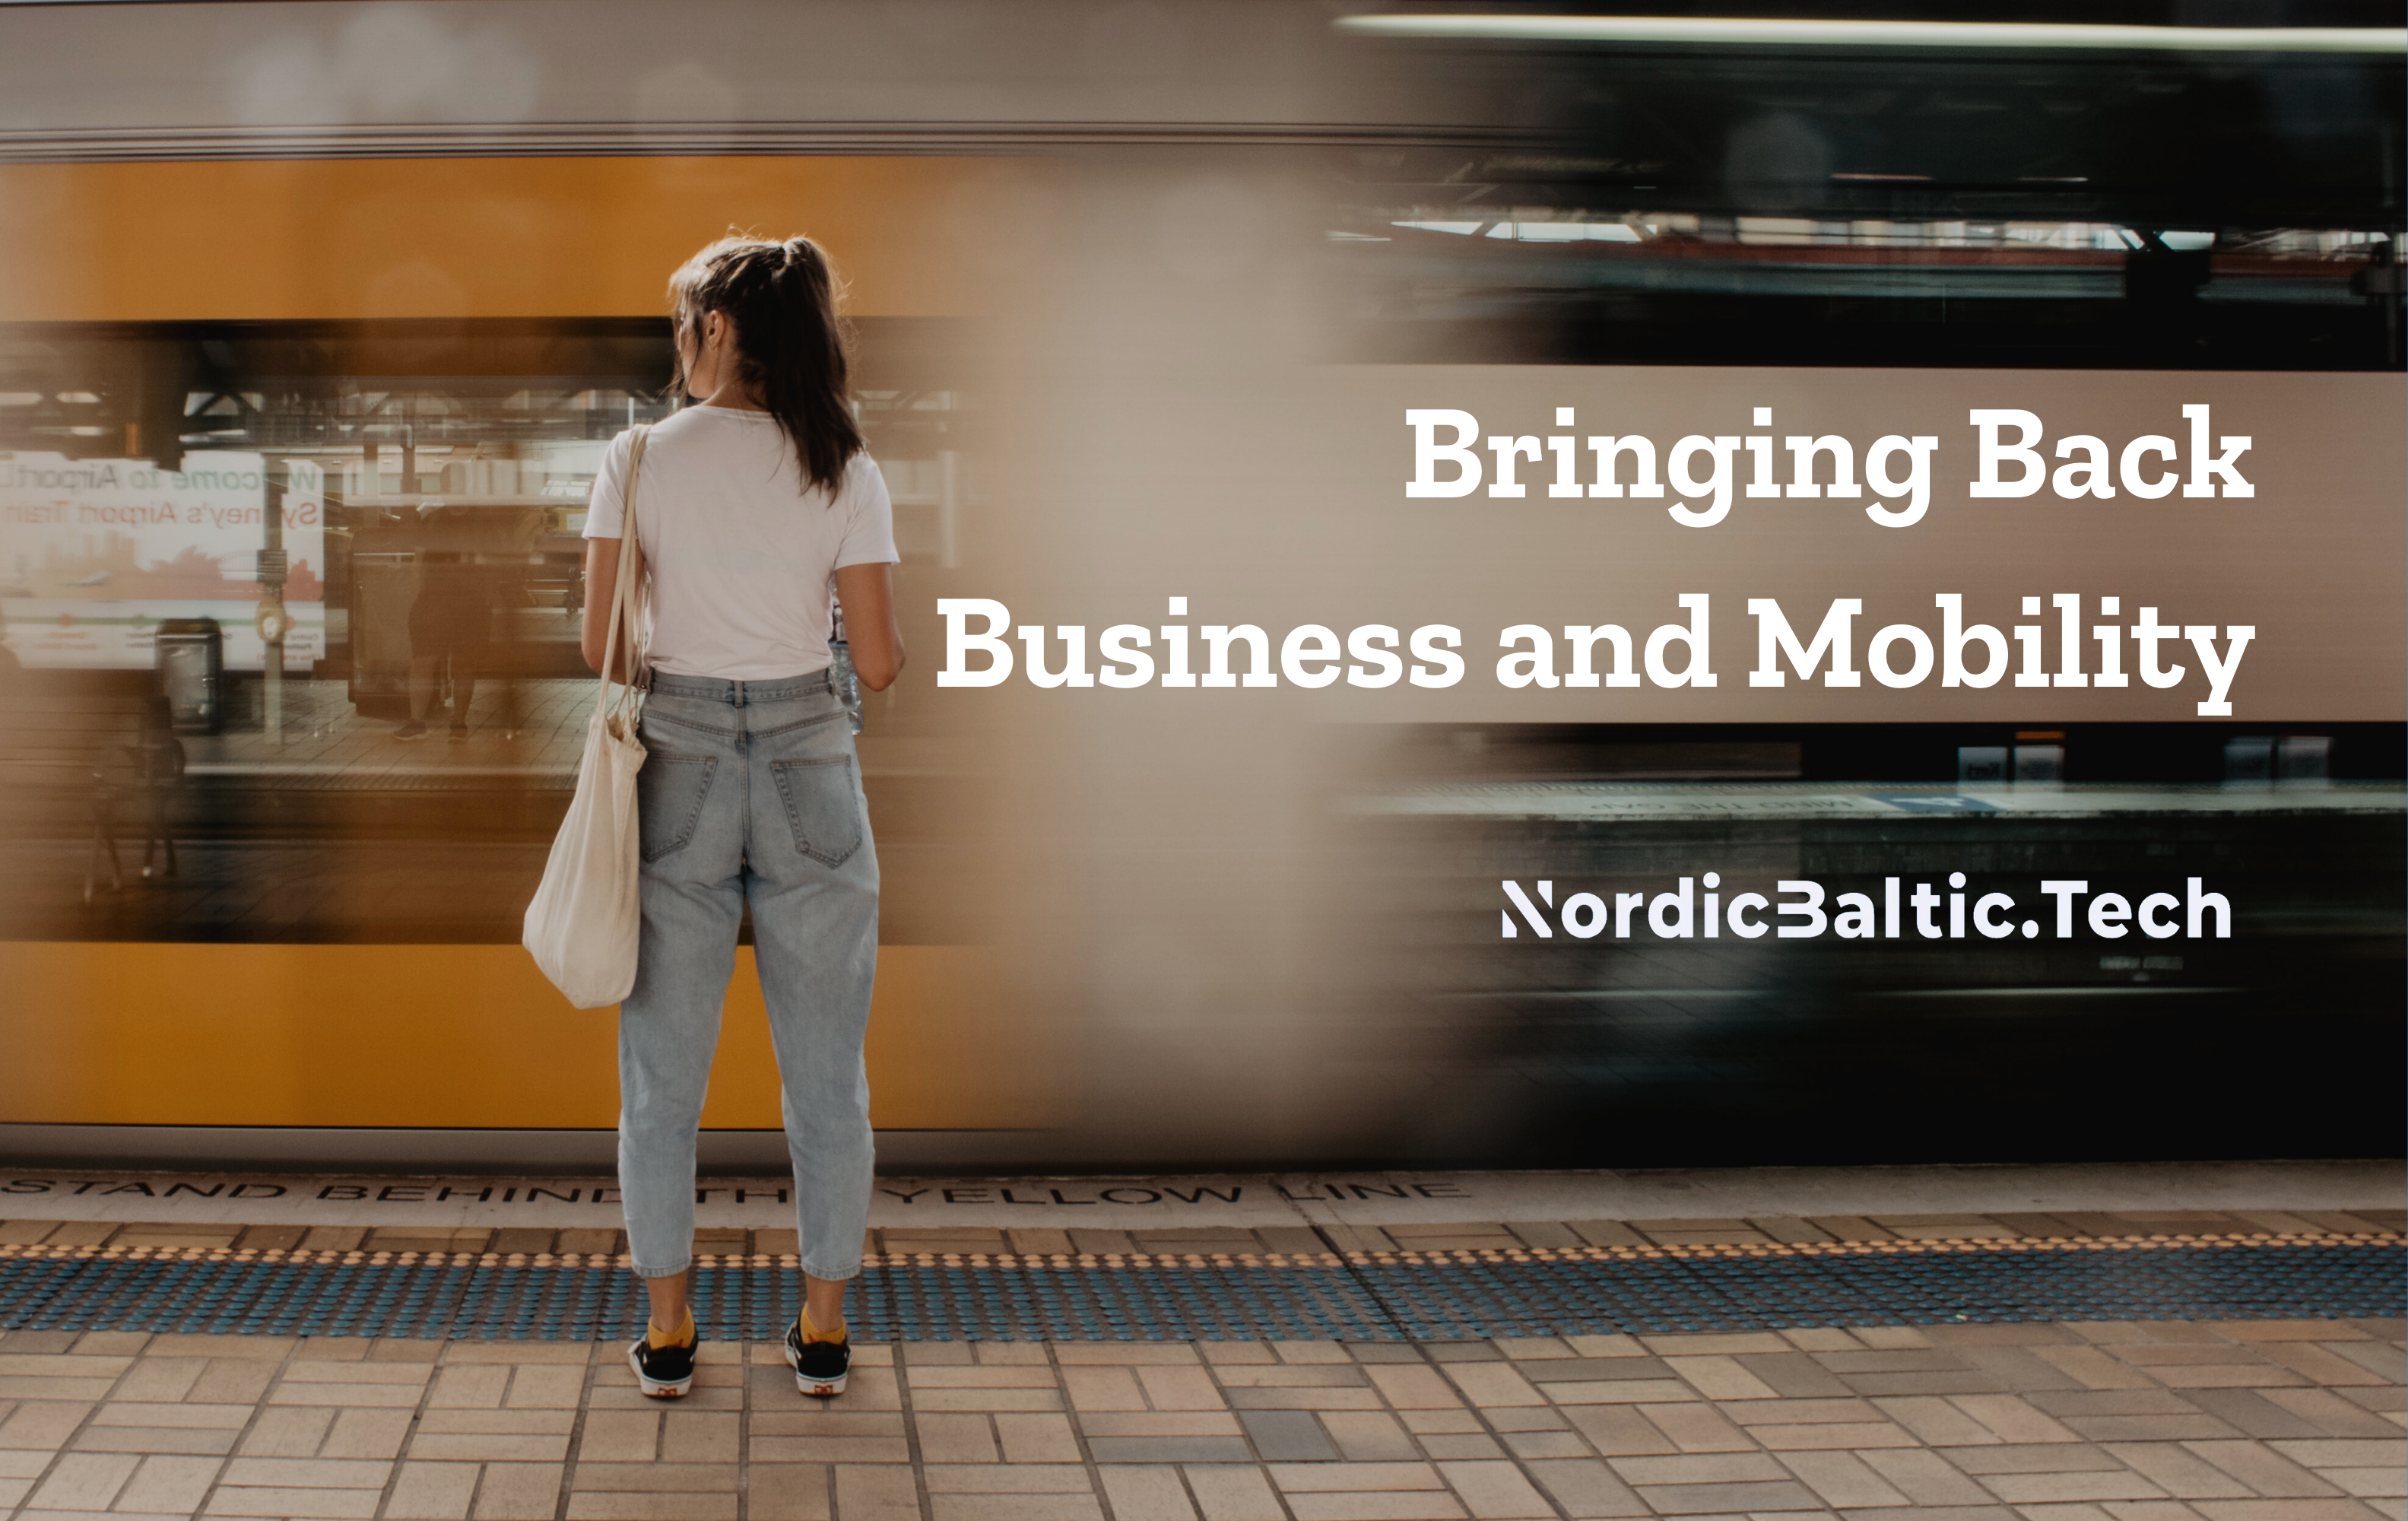 Nordic Baltic Tech business mobility